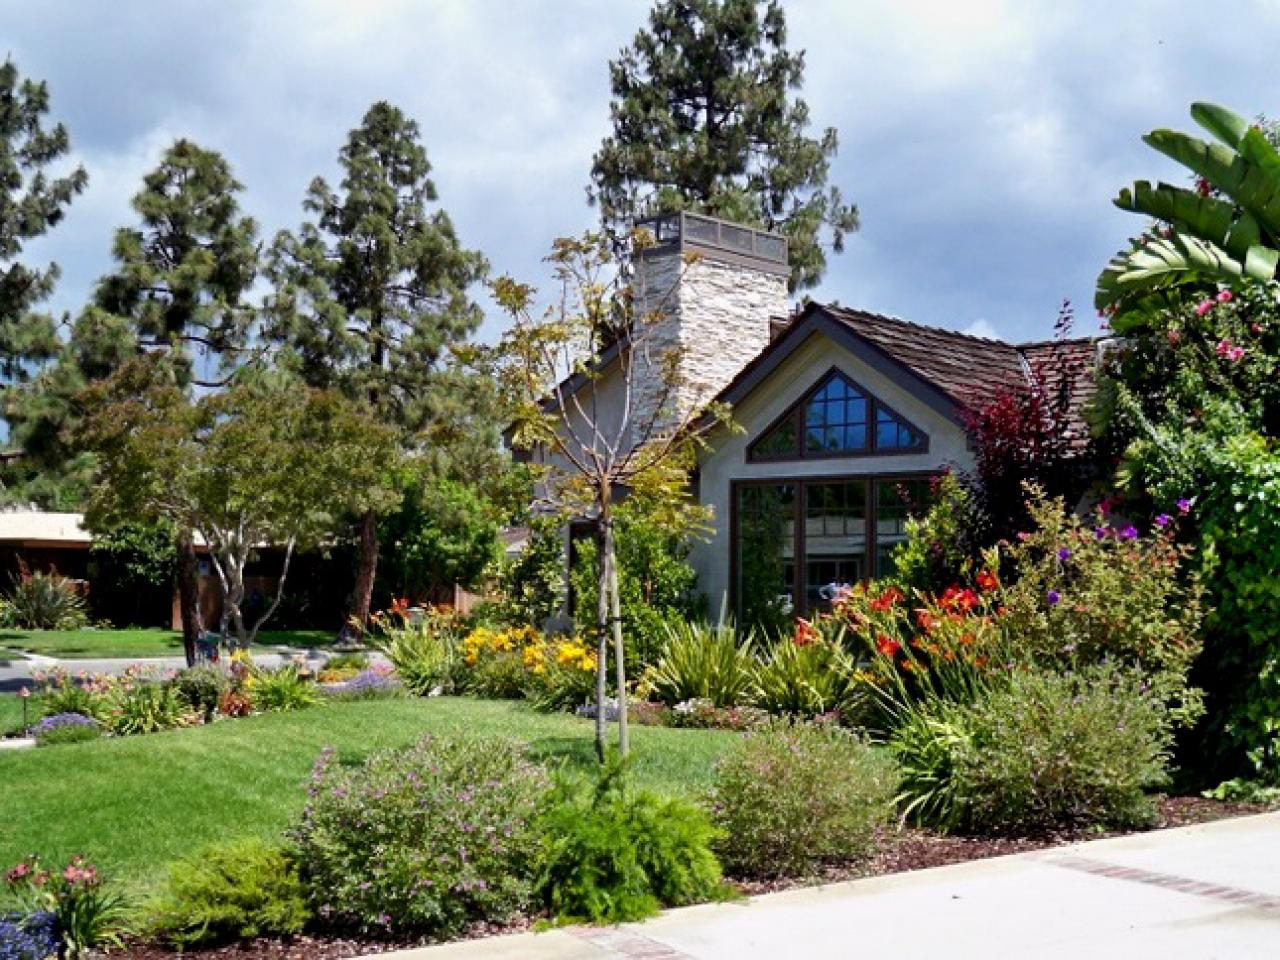 Landscaping Ideas For Front Yard Images : Fabulous front yards landscaping ideas and hardscape